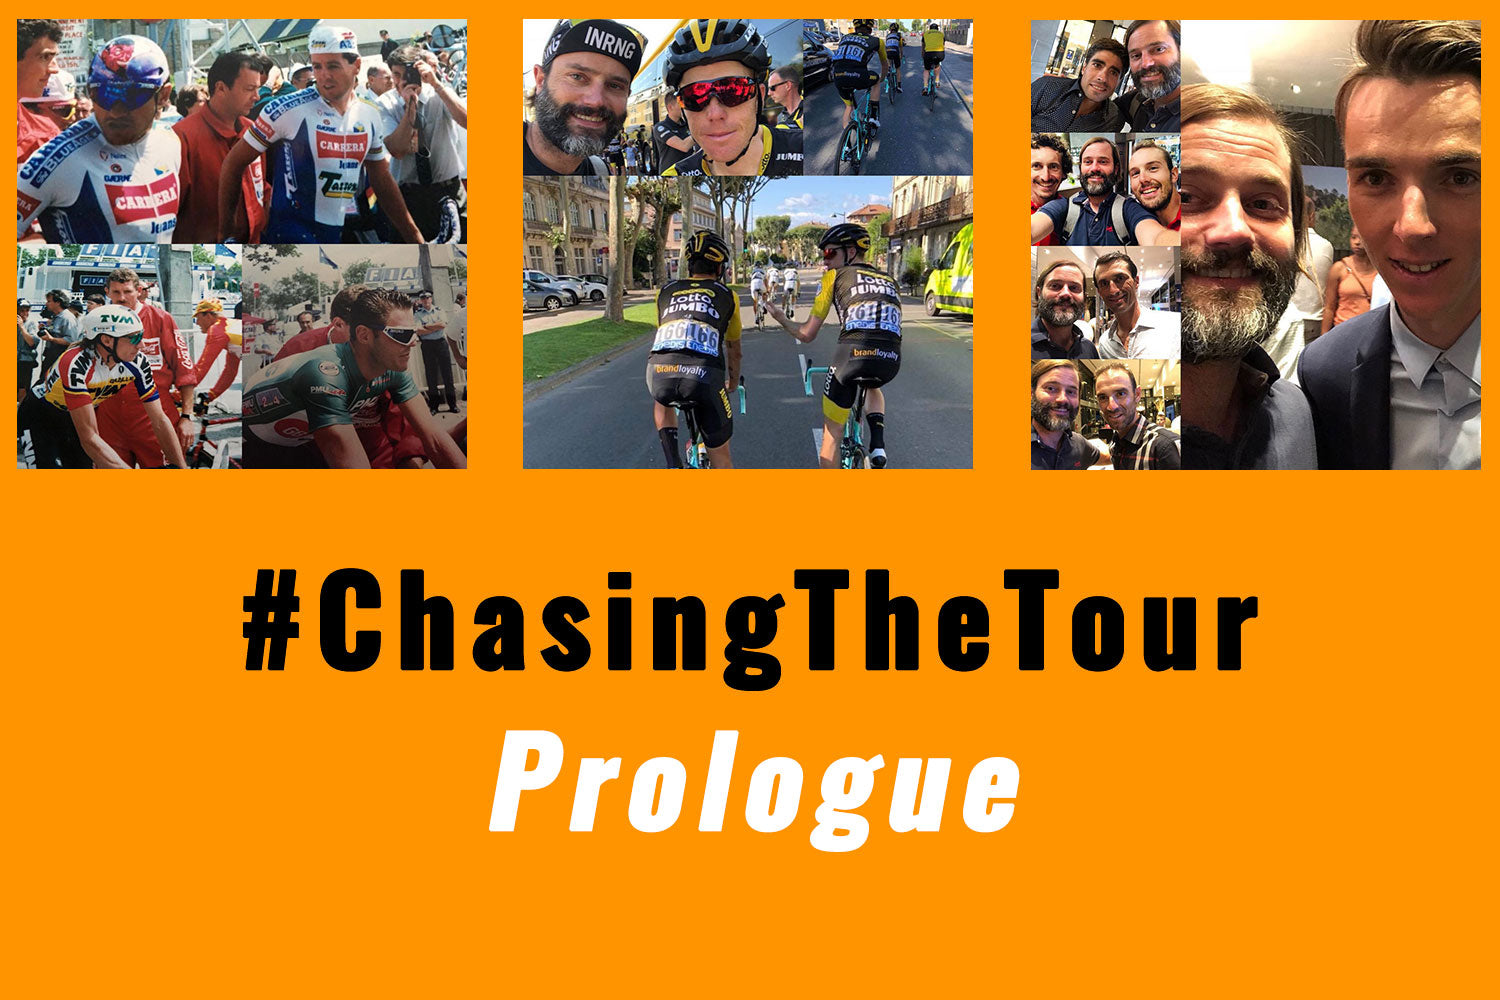 Chasing the Tour - Prologue